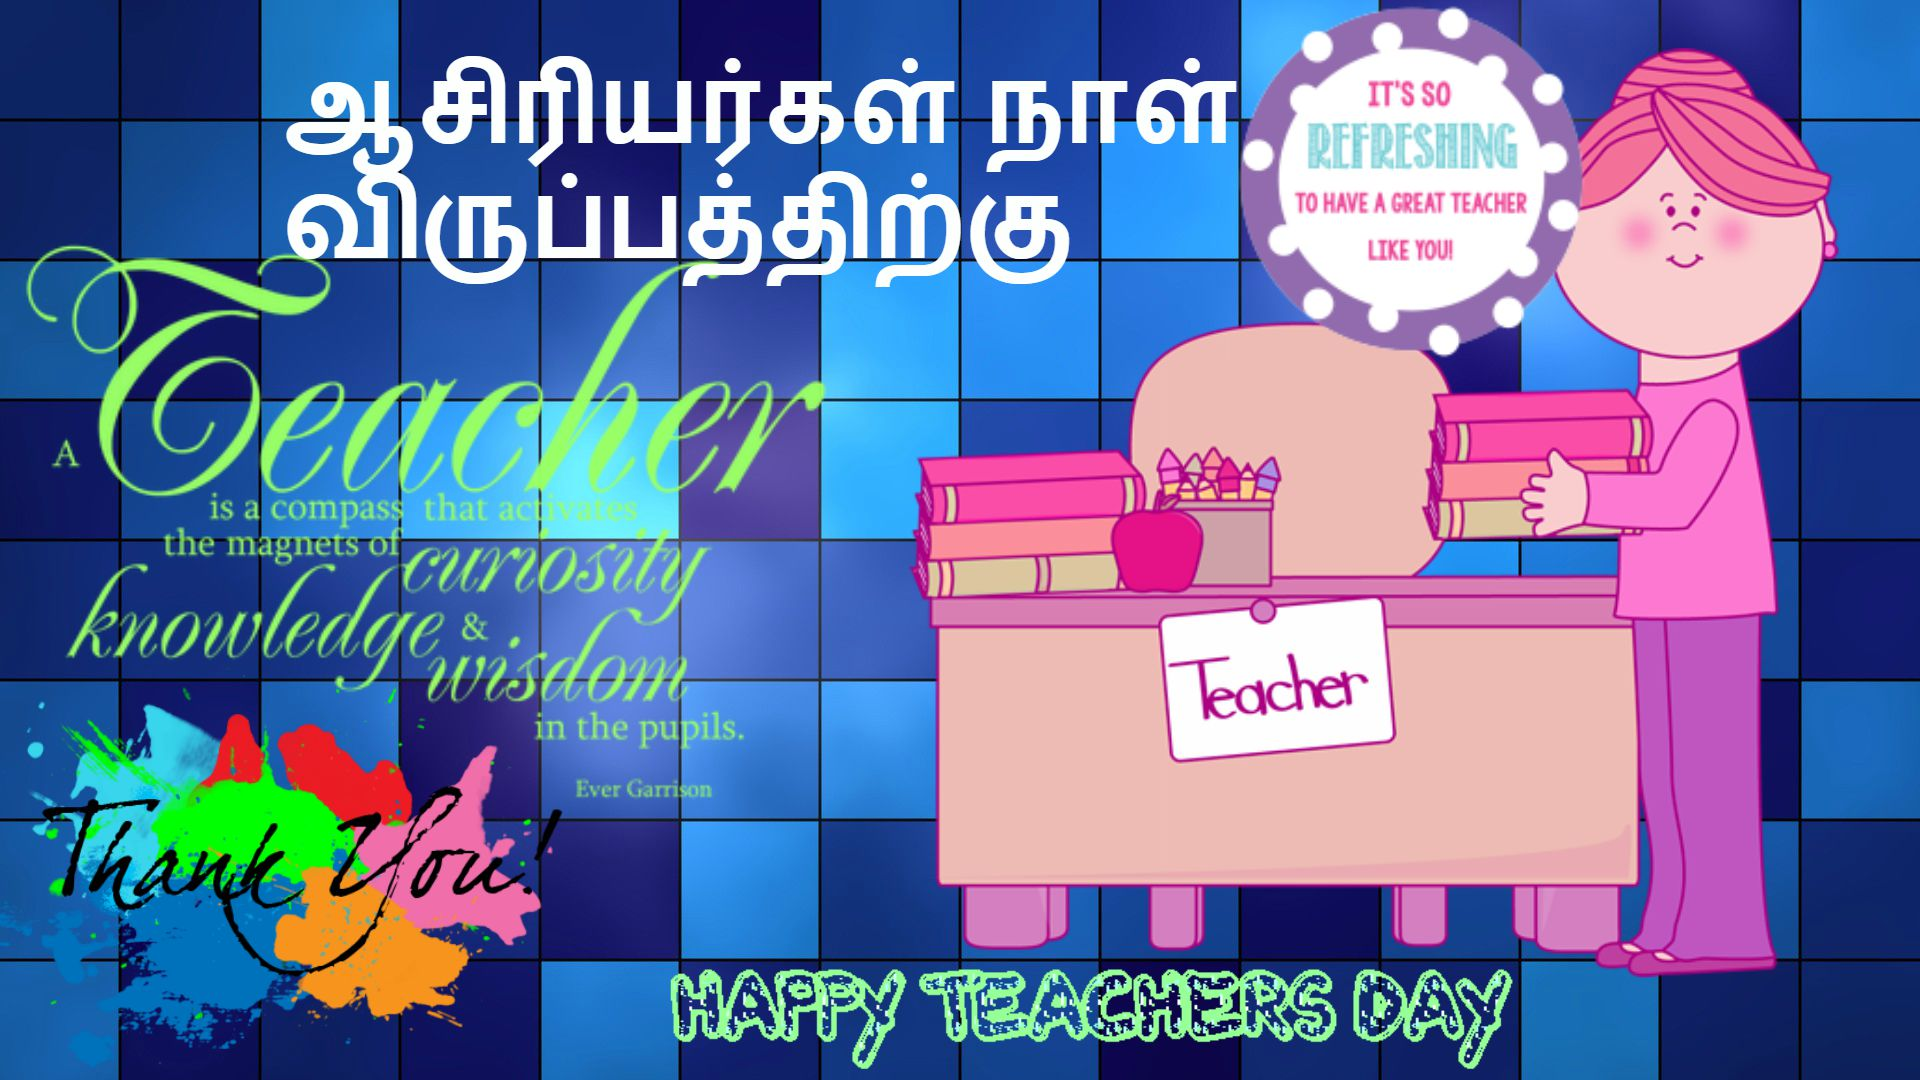 Teachers day wishes in tamil - Best Greetings Quotes 2020